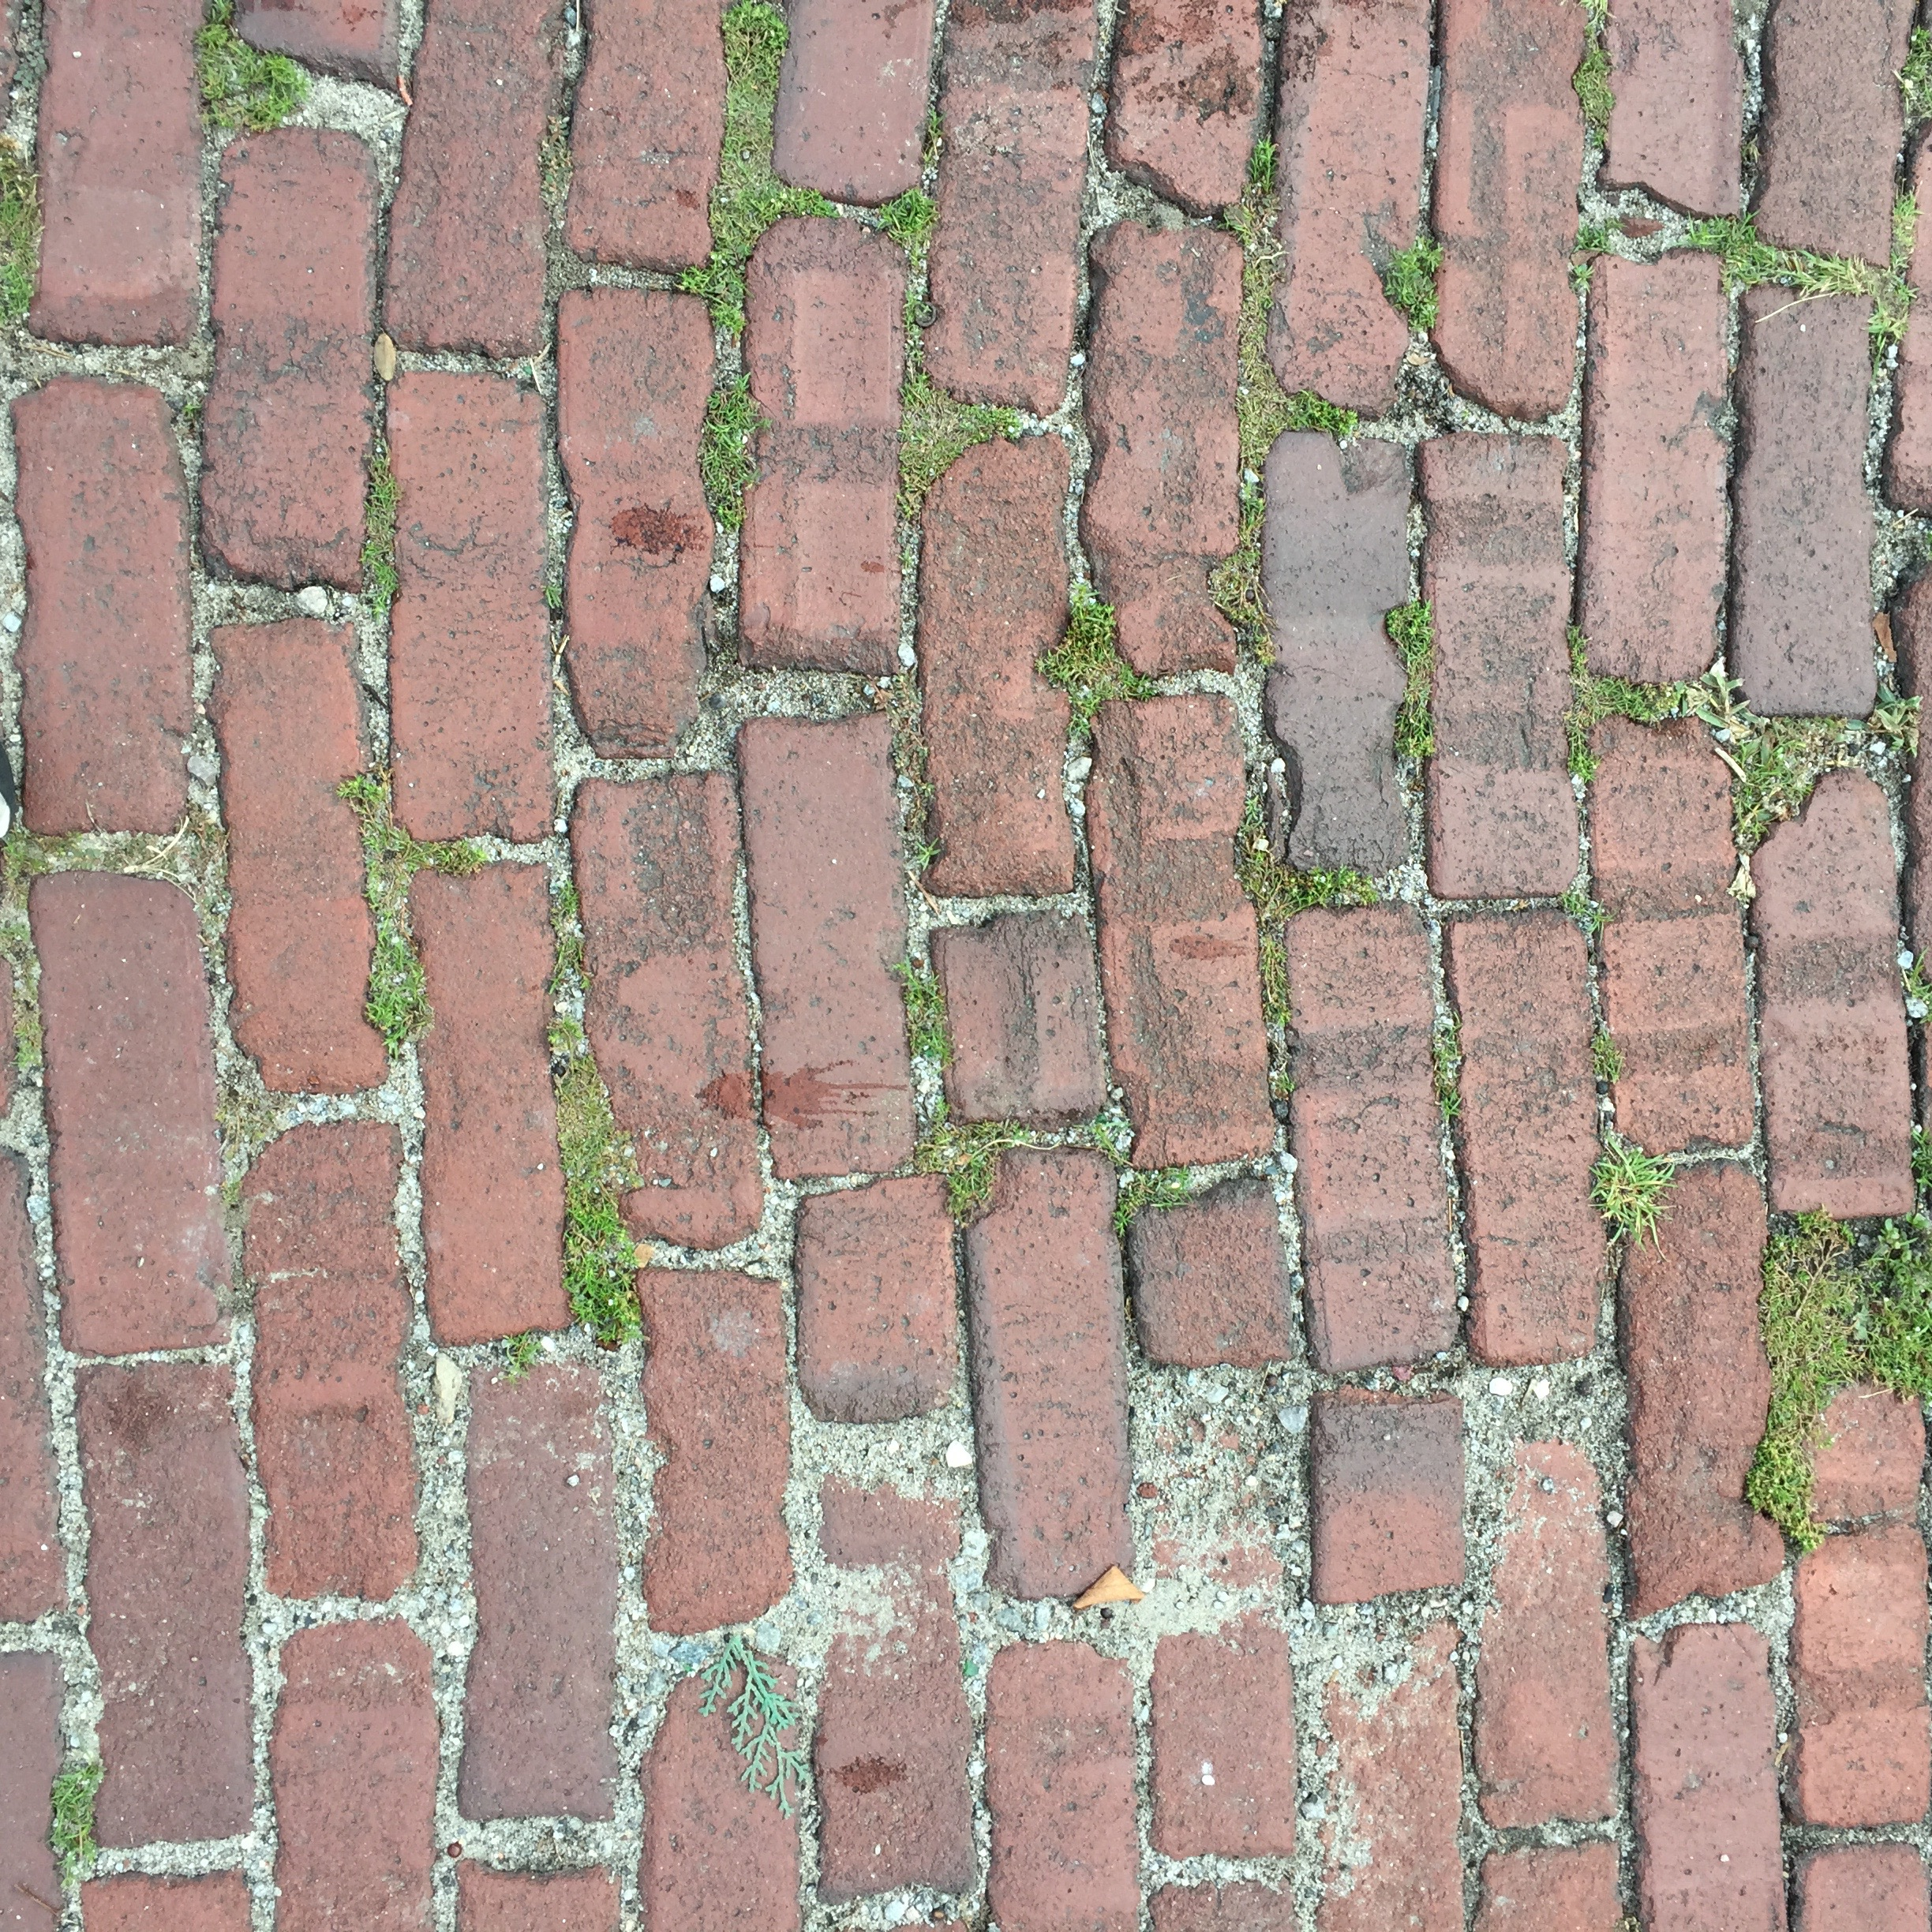 Life among the old brick pavers in the alley outside our back door.